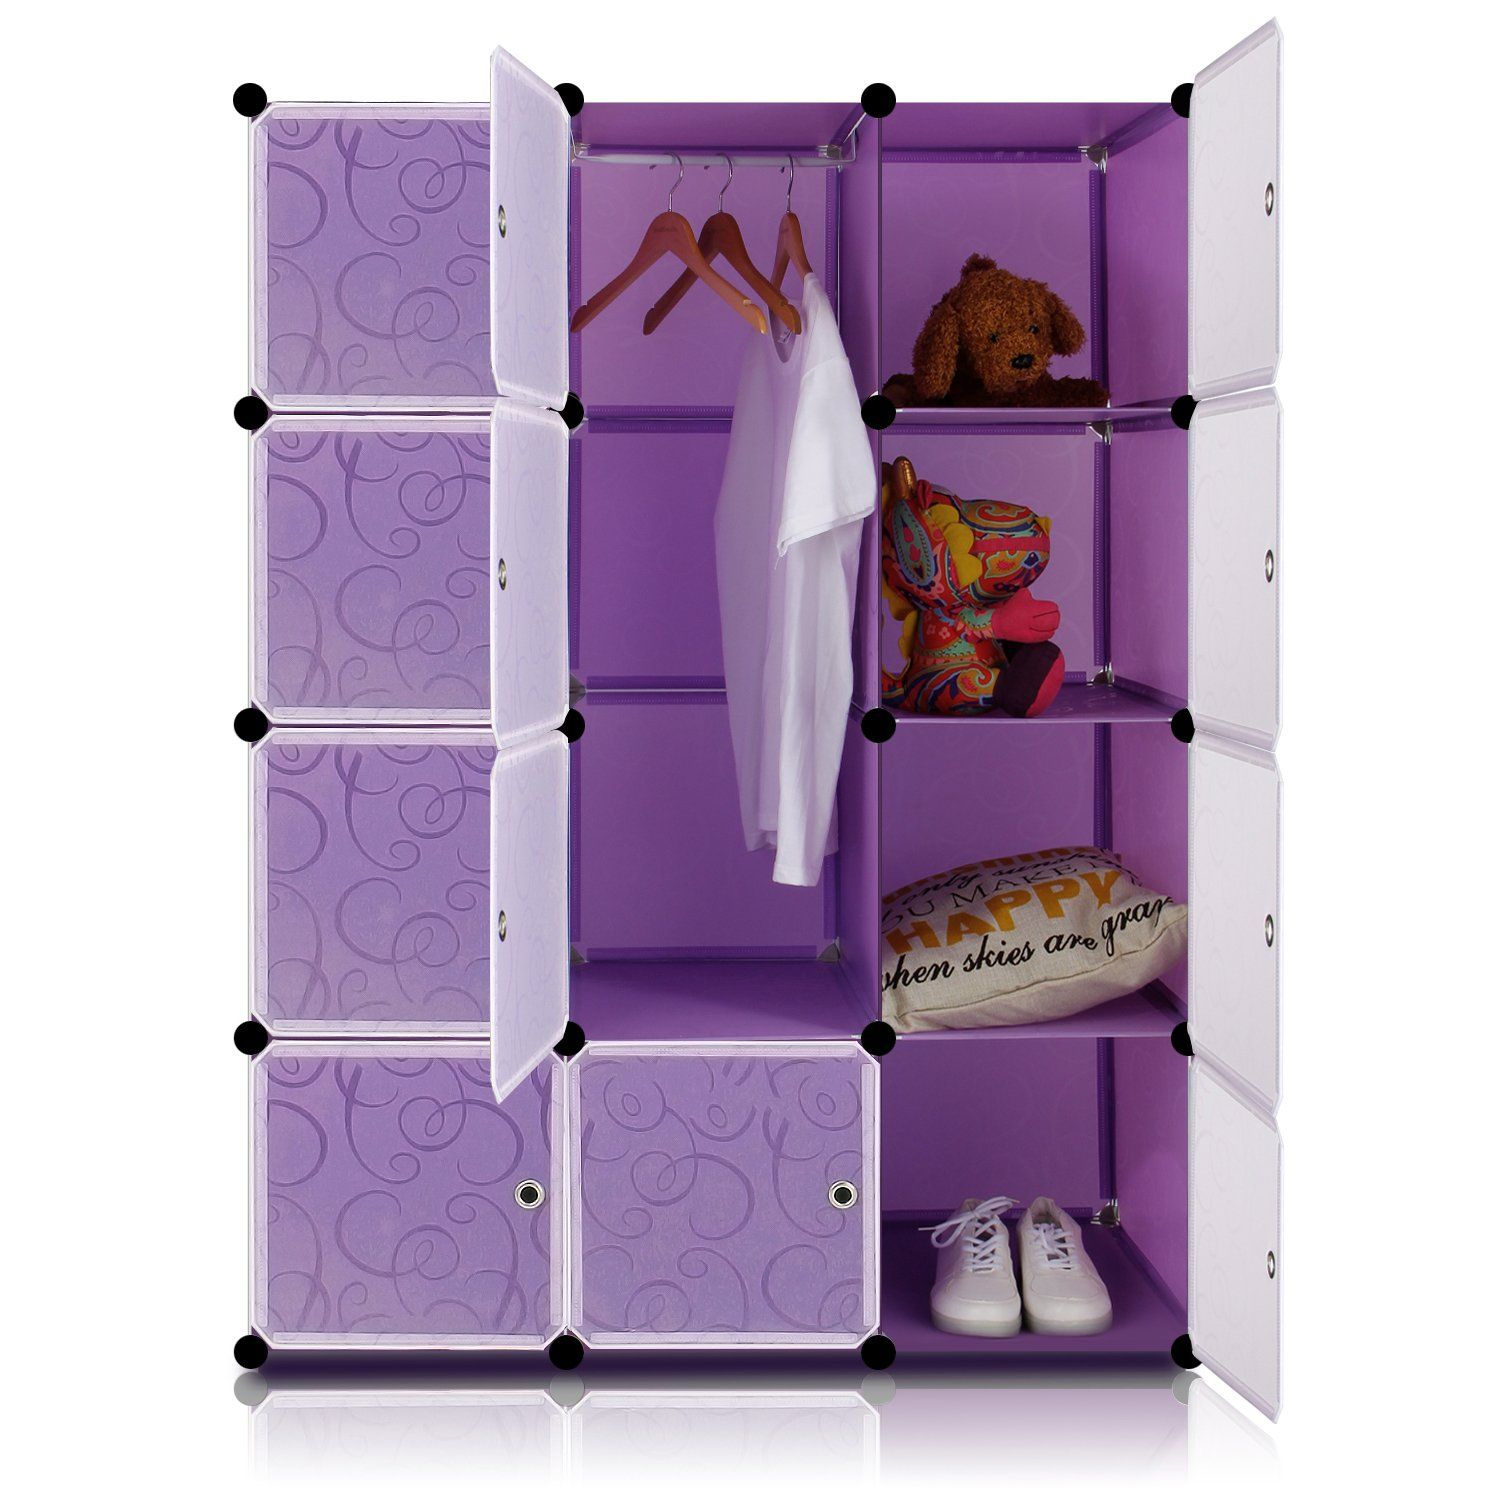 Lifewit 4 Tier Clothes Closet Diy Portable Wardrobe Freestanding Large E Storage Organizer Purple With White Doors